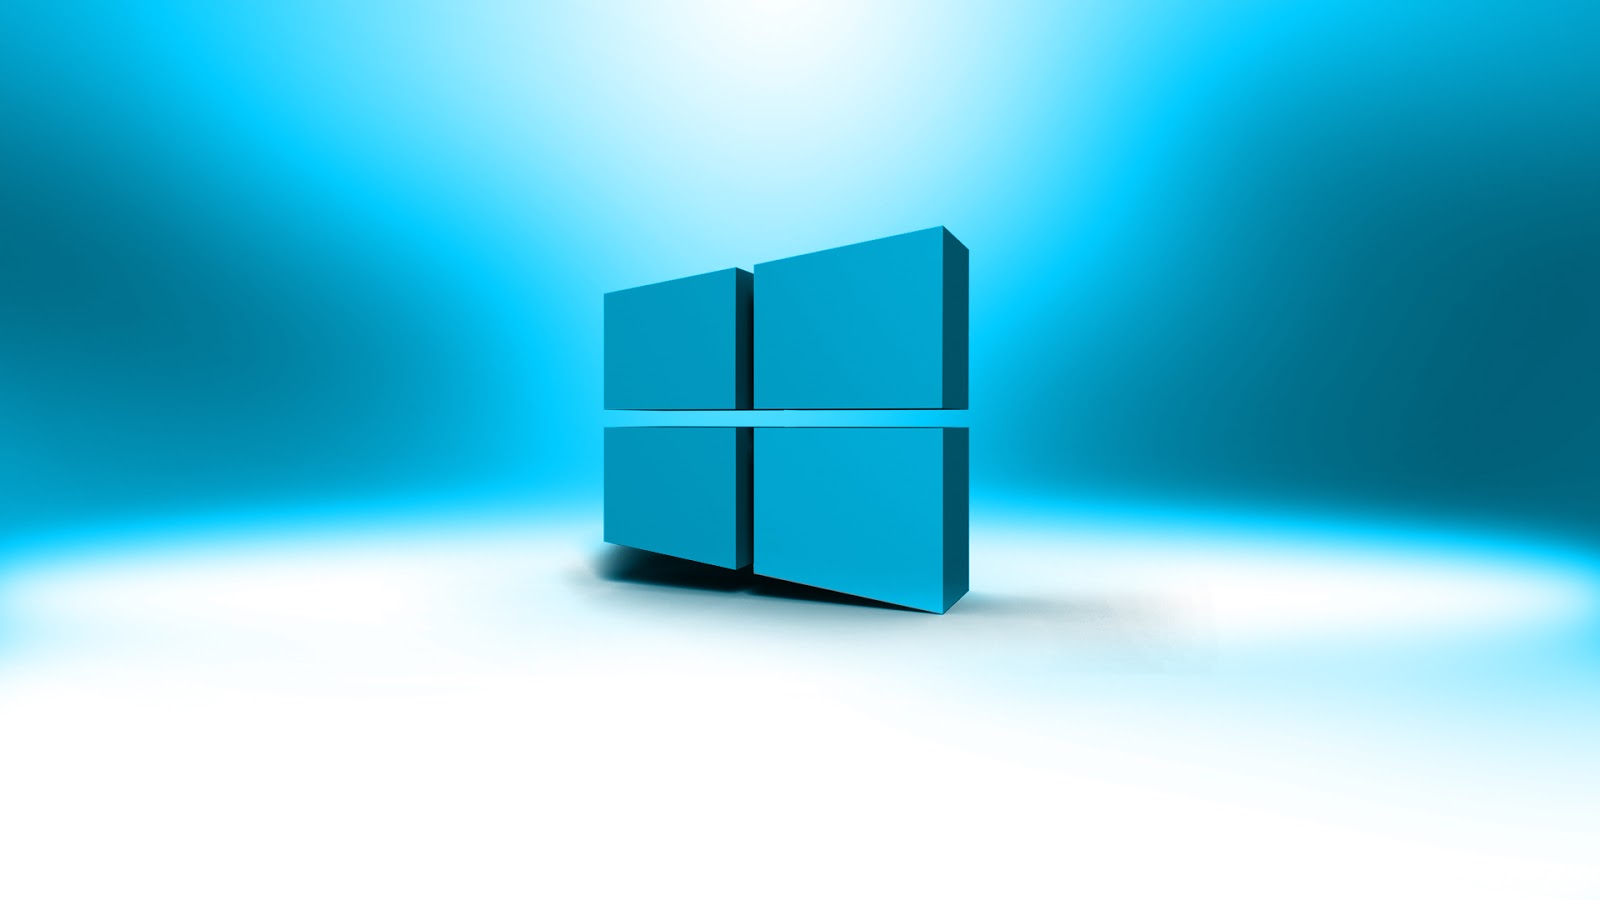 New Windows 8 Exclusive Wallpapers | Windows 8 HD Wallpapers | Nature ...